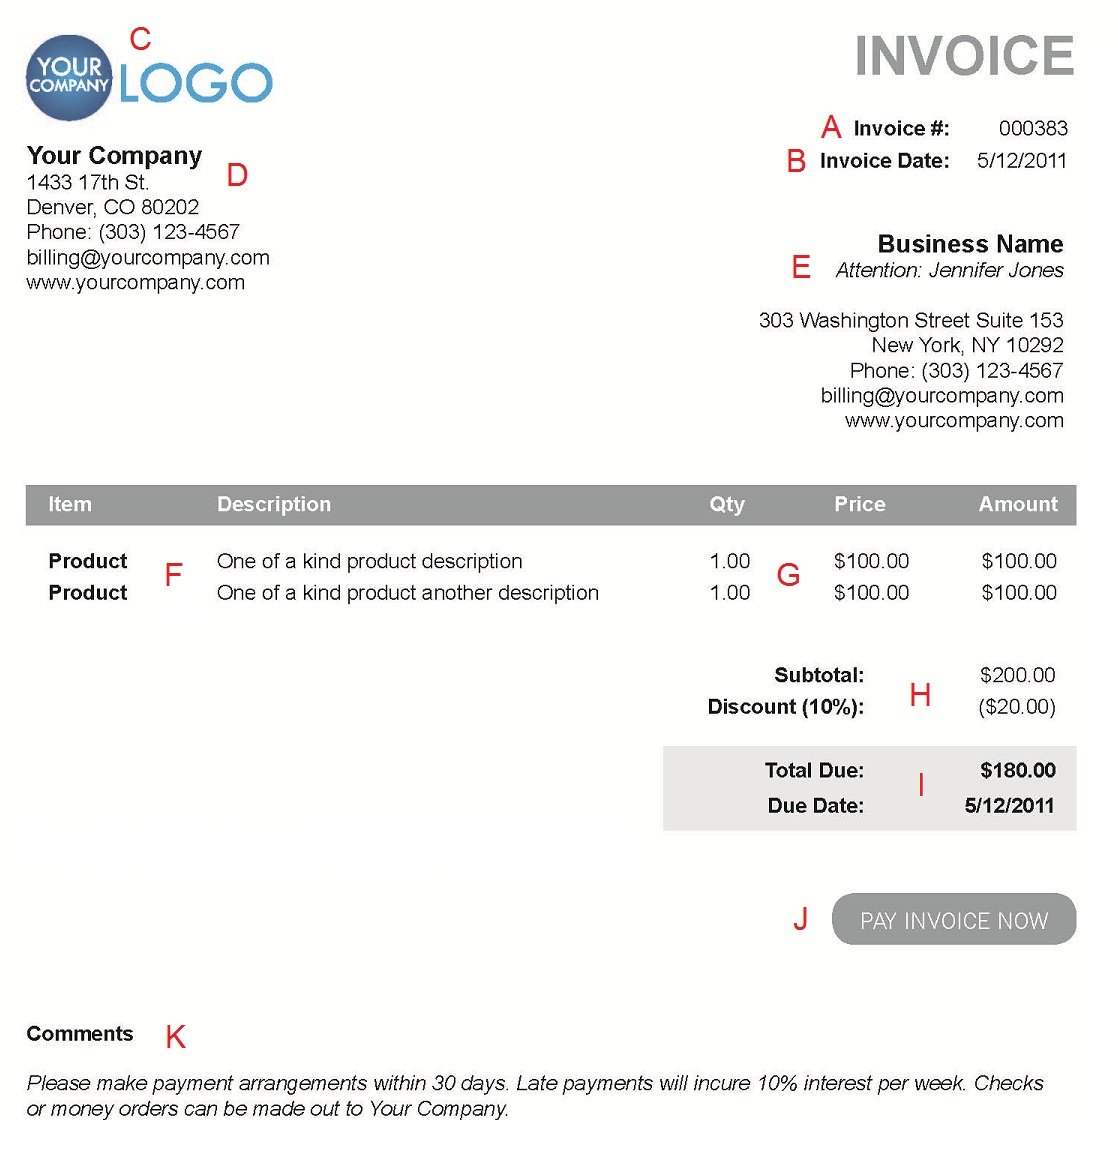 Coachoutletonlineplusus  Wonderful The  Different Sections Of An Electronic Payment Invoice With Fascinating A  With Agreeable Amazon Invoices Also Invoice Proforma In Addition Consulting Invoice Example And How To Create Invoices In Quickbooks As Well As  Toyota Corolla Invoice Price Additionally Importing Invoices Into Quickbooks From Paysimplecom With Coachoutletonlineplusus  Fascinating The  Different Sections Of An Electronic Payment Invoice With Agreeable A  And Wonderful Amazon Invoices Also Invoice Proforma In Addition Consulting Invoice Example From Paysimplecom